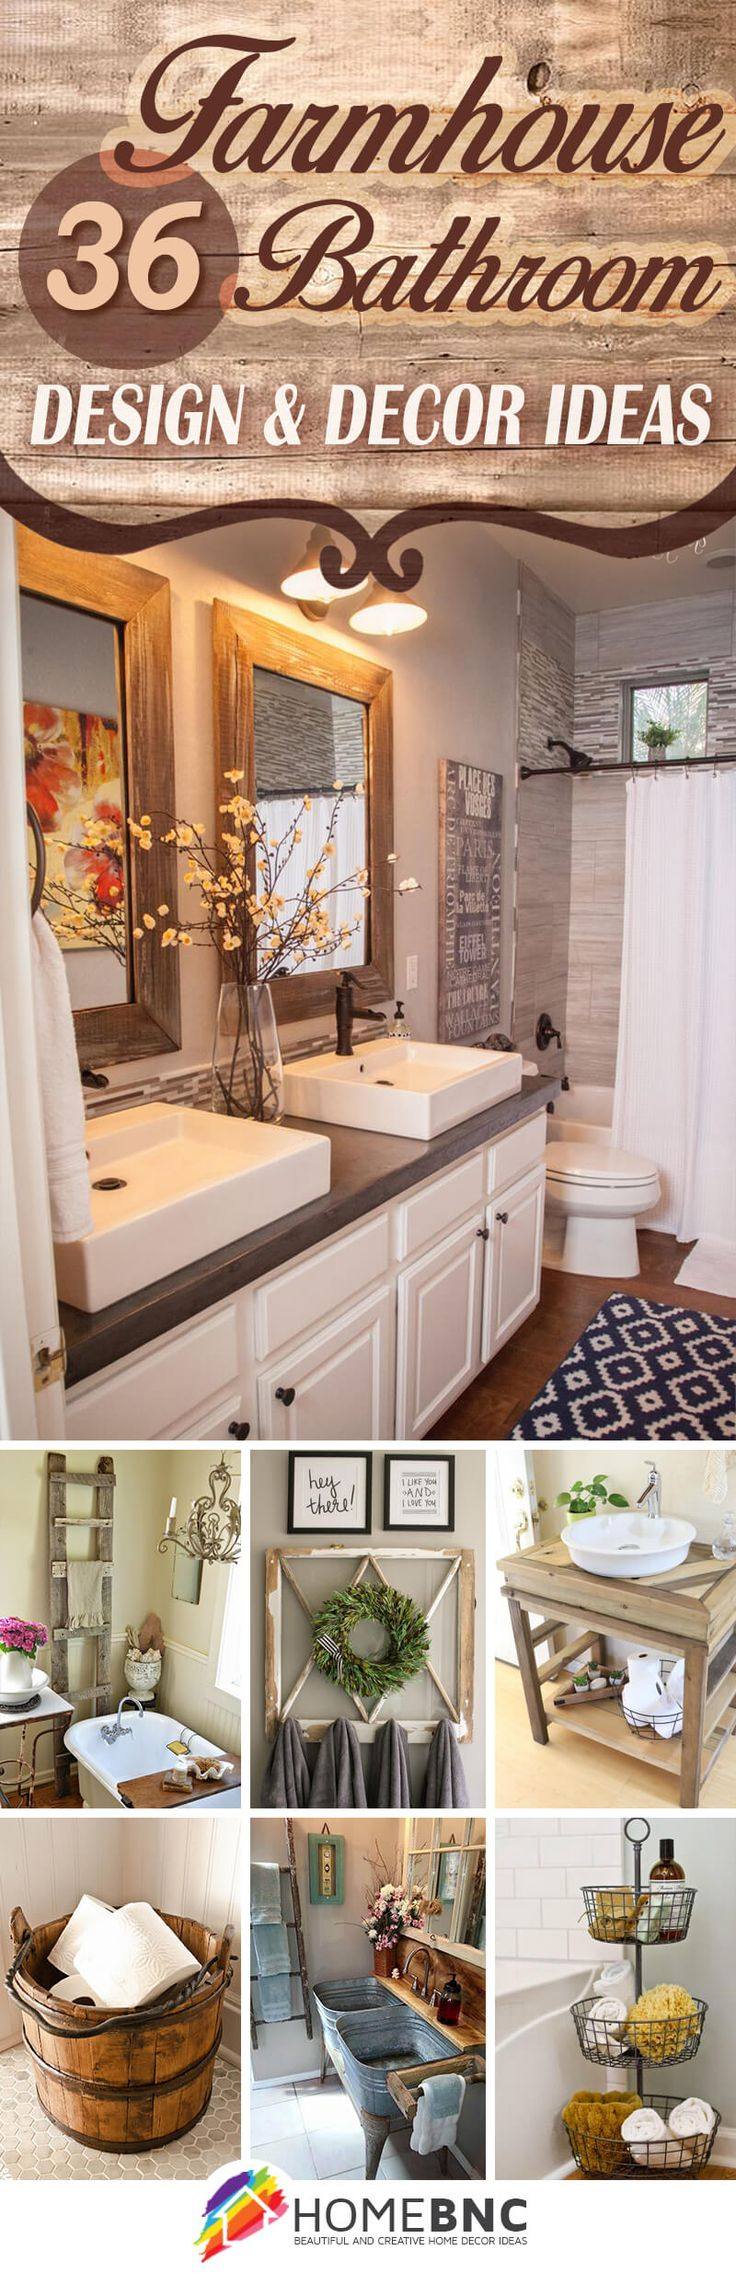 36 Beautiful Farmhouse Bathroom Design And Decor Ideas You Will Go Crazy For